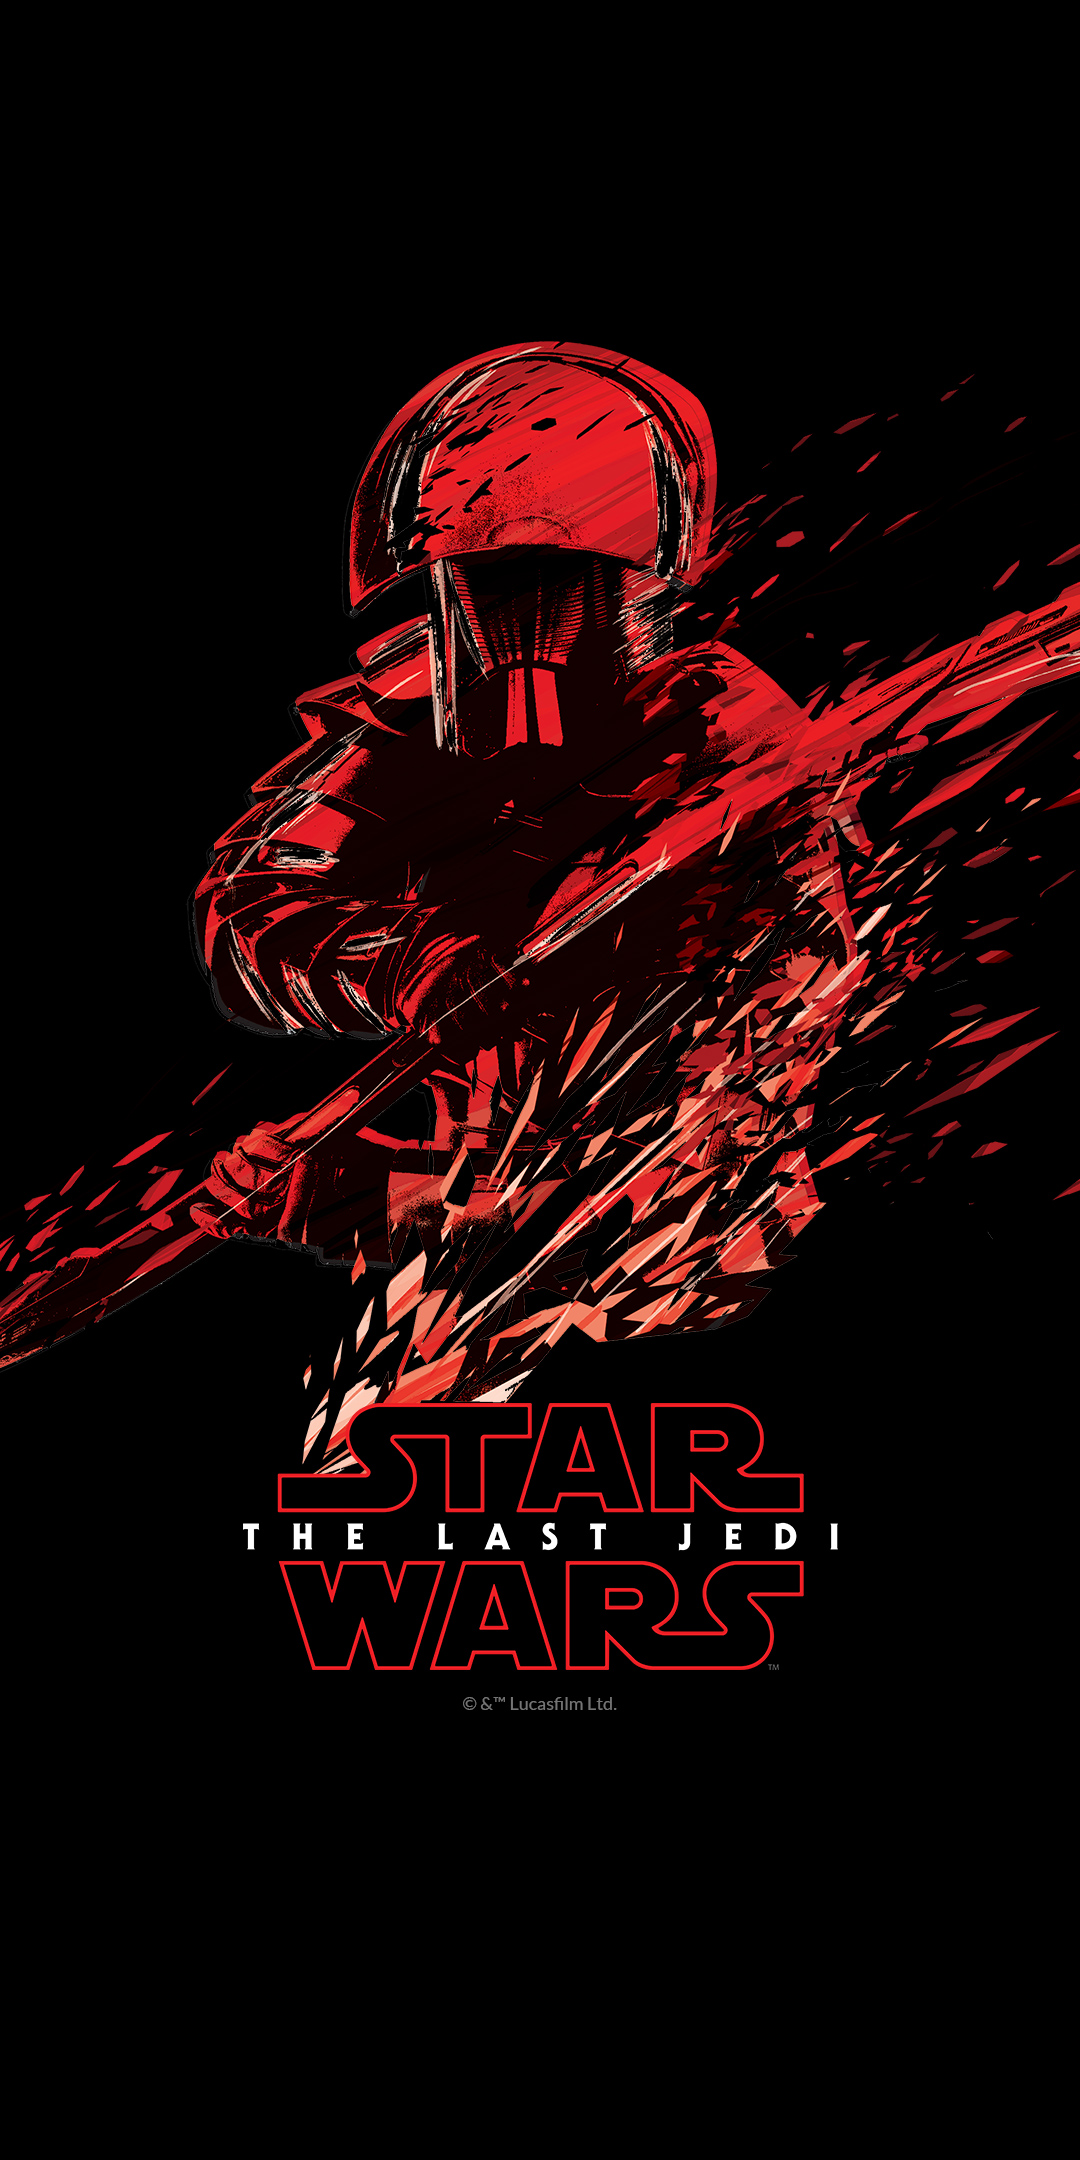 Star Wars Wallpaper Downloads Posted By Zoey Simpson